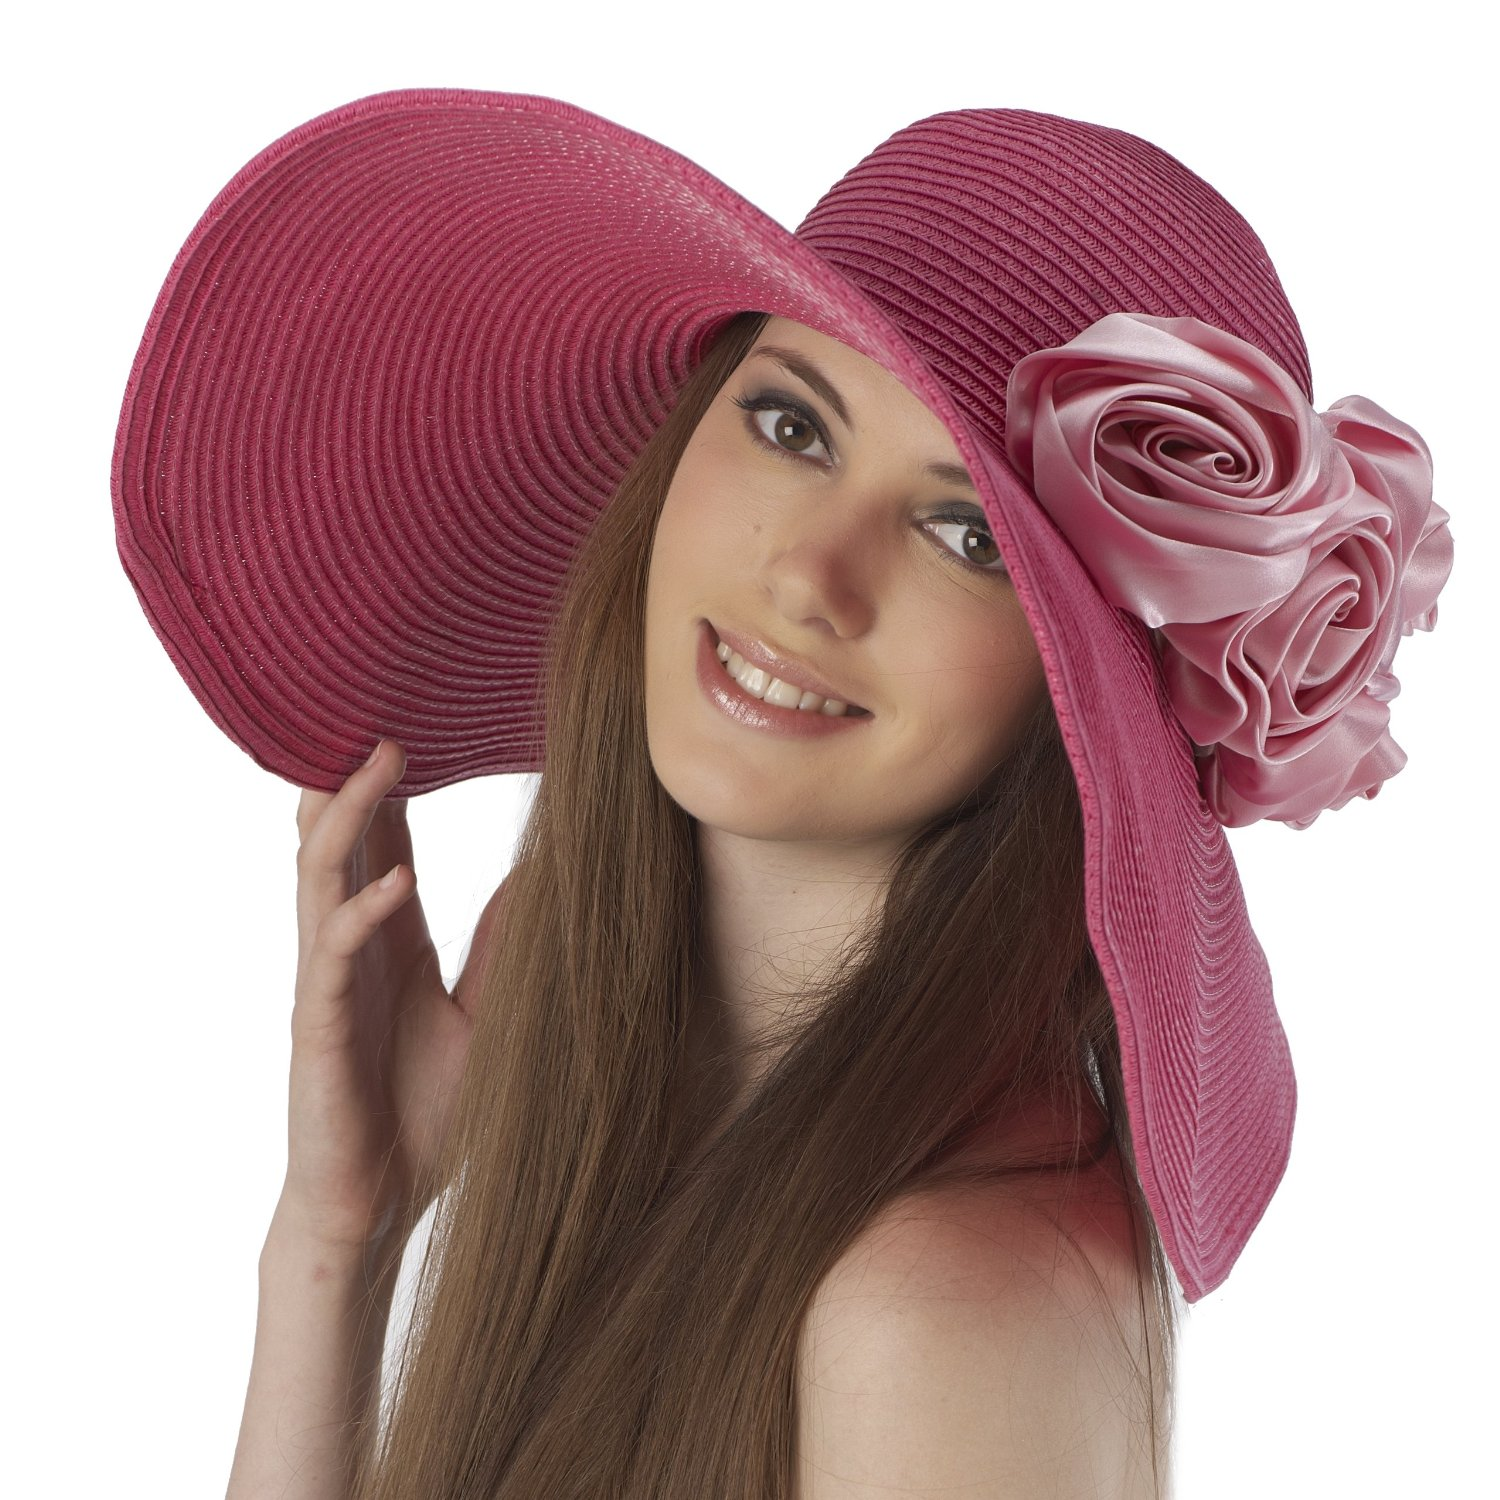 Awesome Fashion 2012: Awesome Summer Hats for 2012